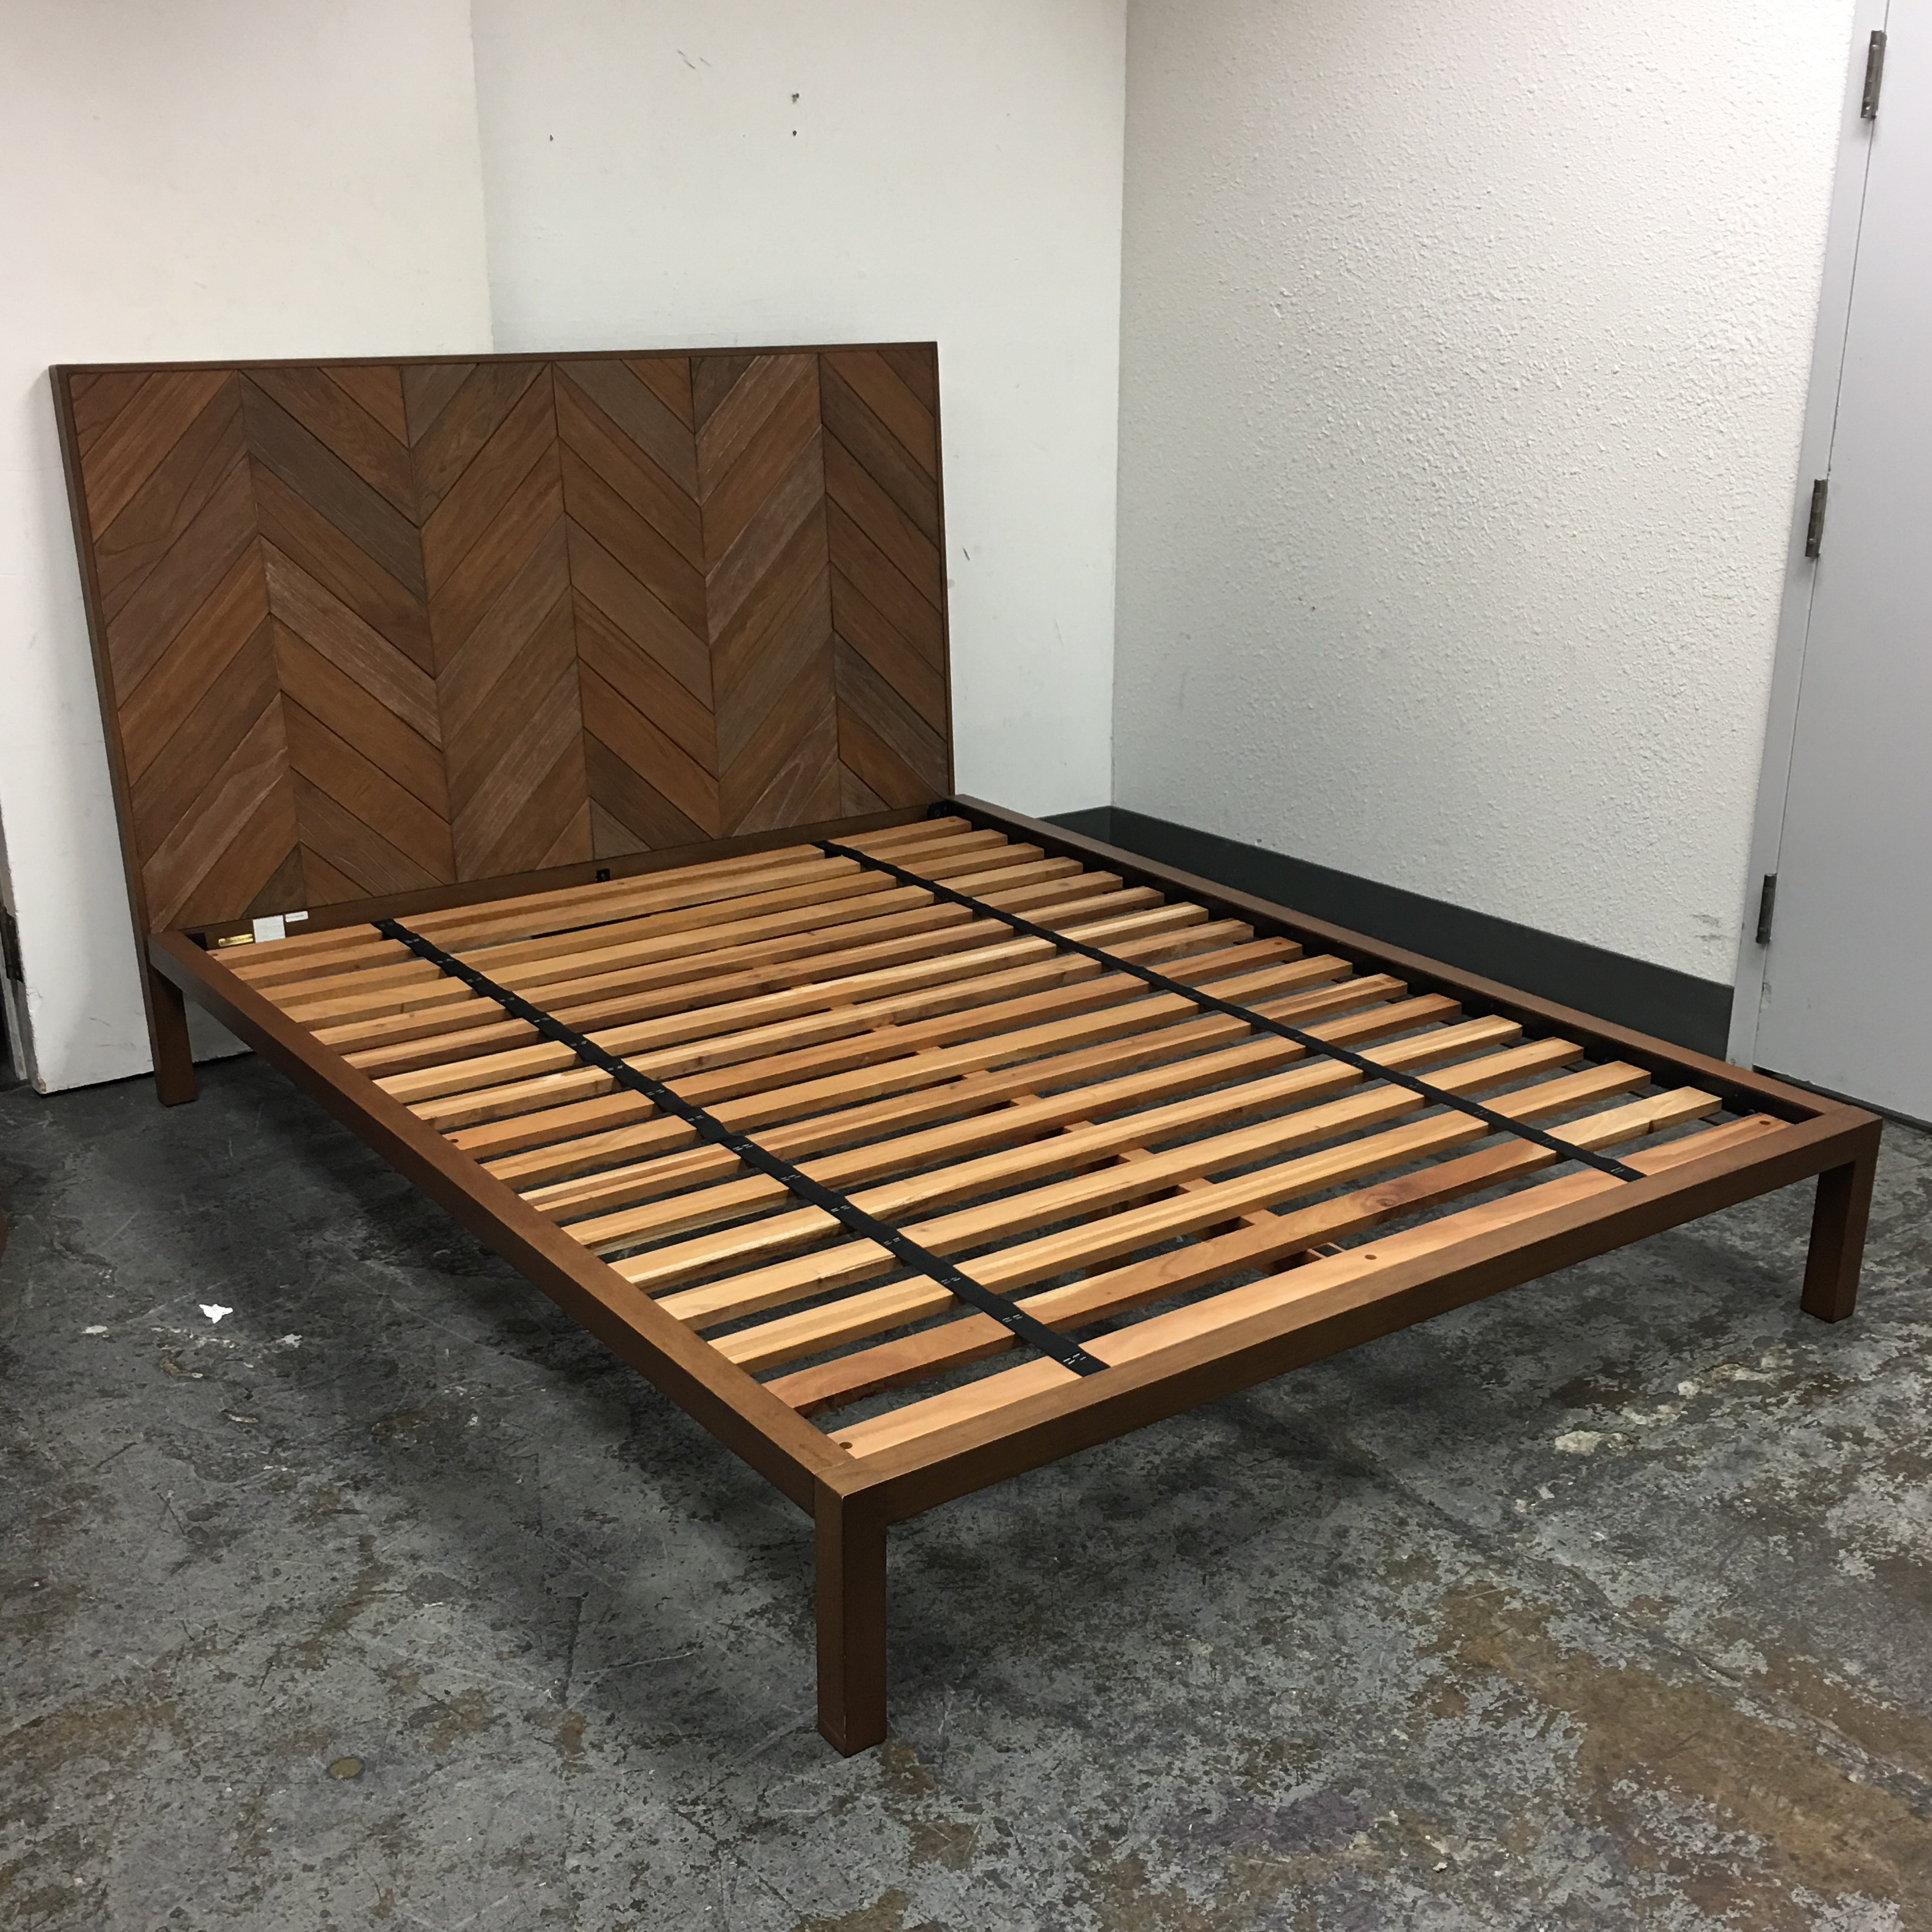 Crate Barrel Chevron Collection Queen Size Bed Frame Chairish